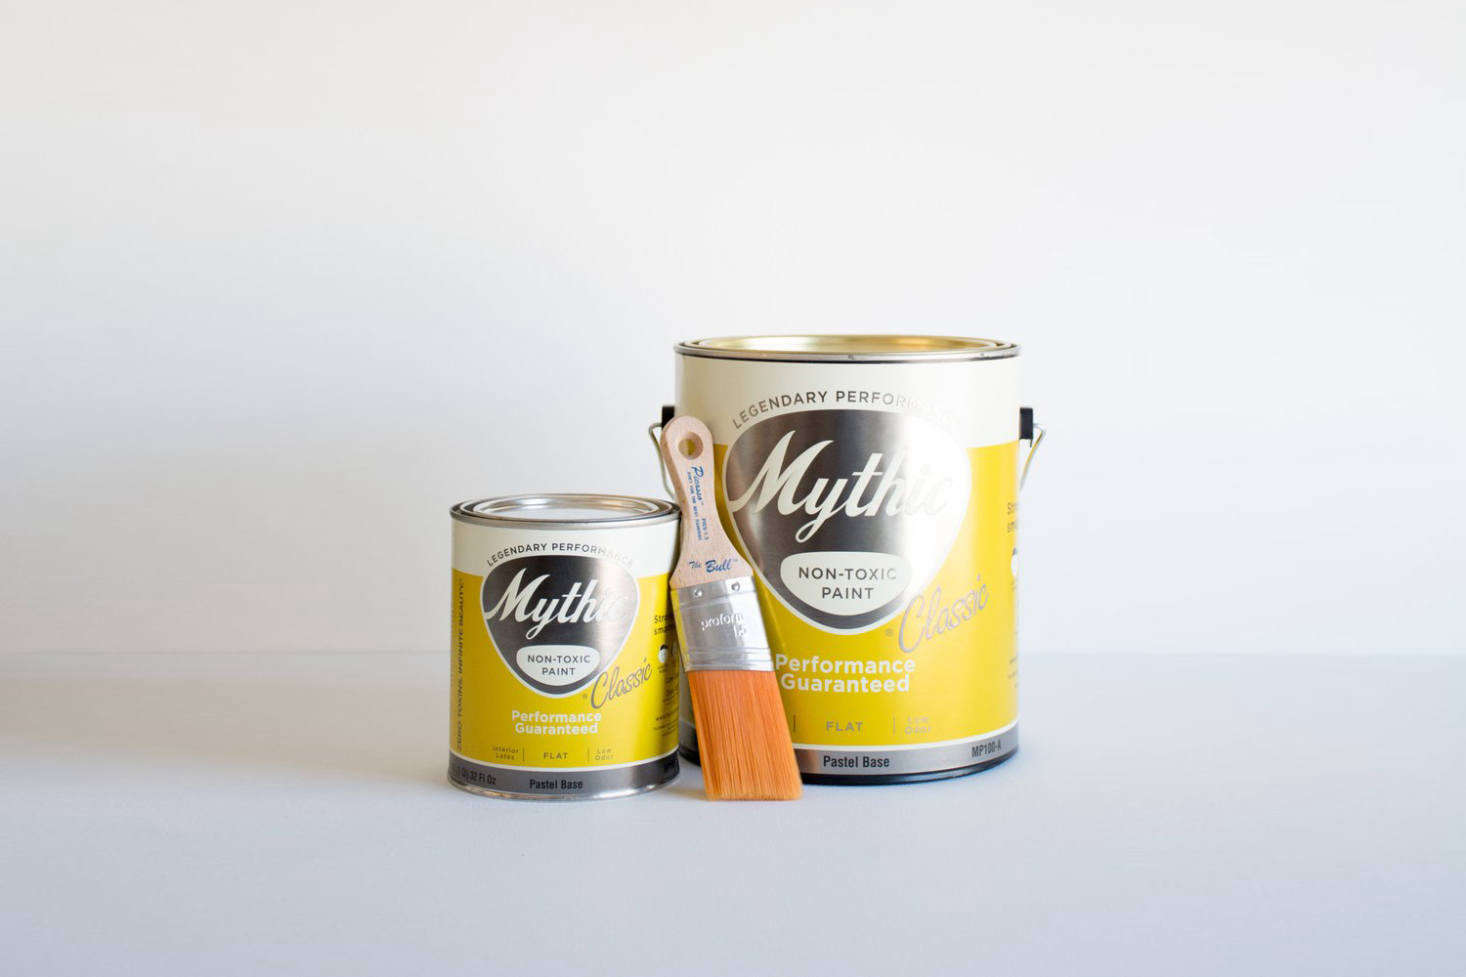 Mythic Paint Is A Nontoxic Ultra Low Odor That Provides The Durability